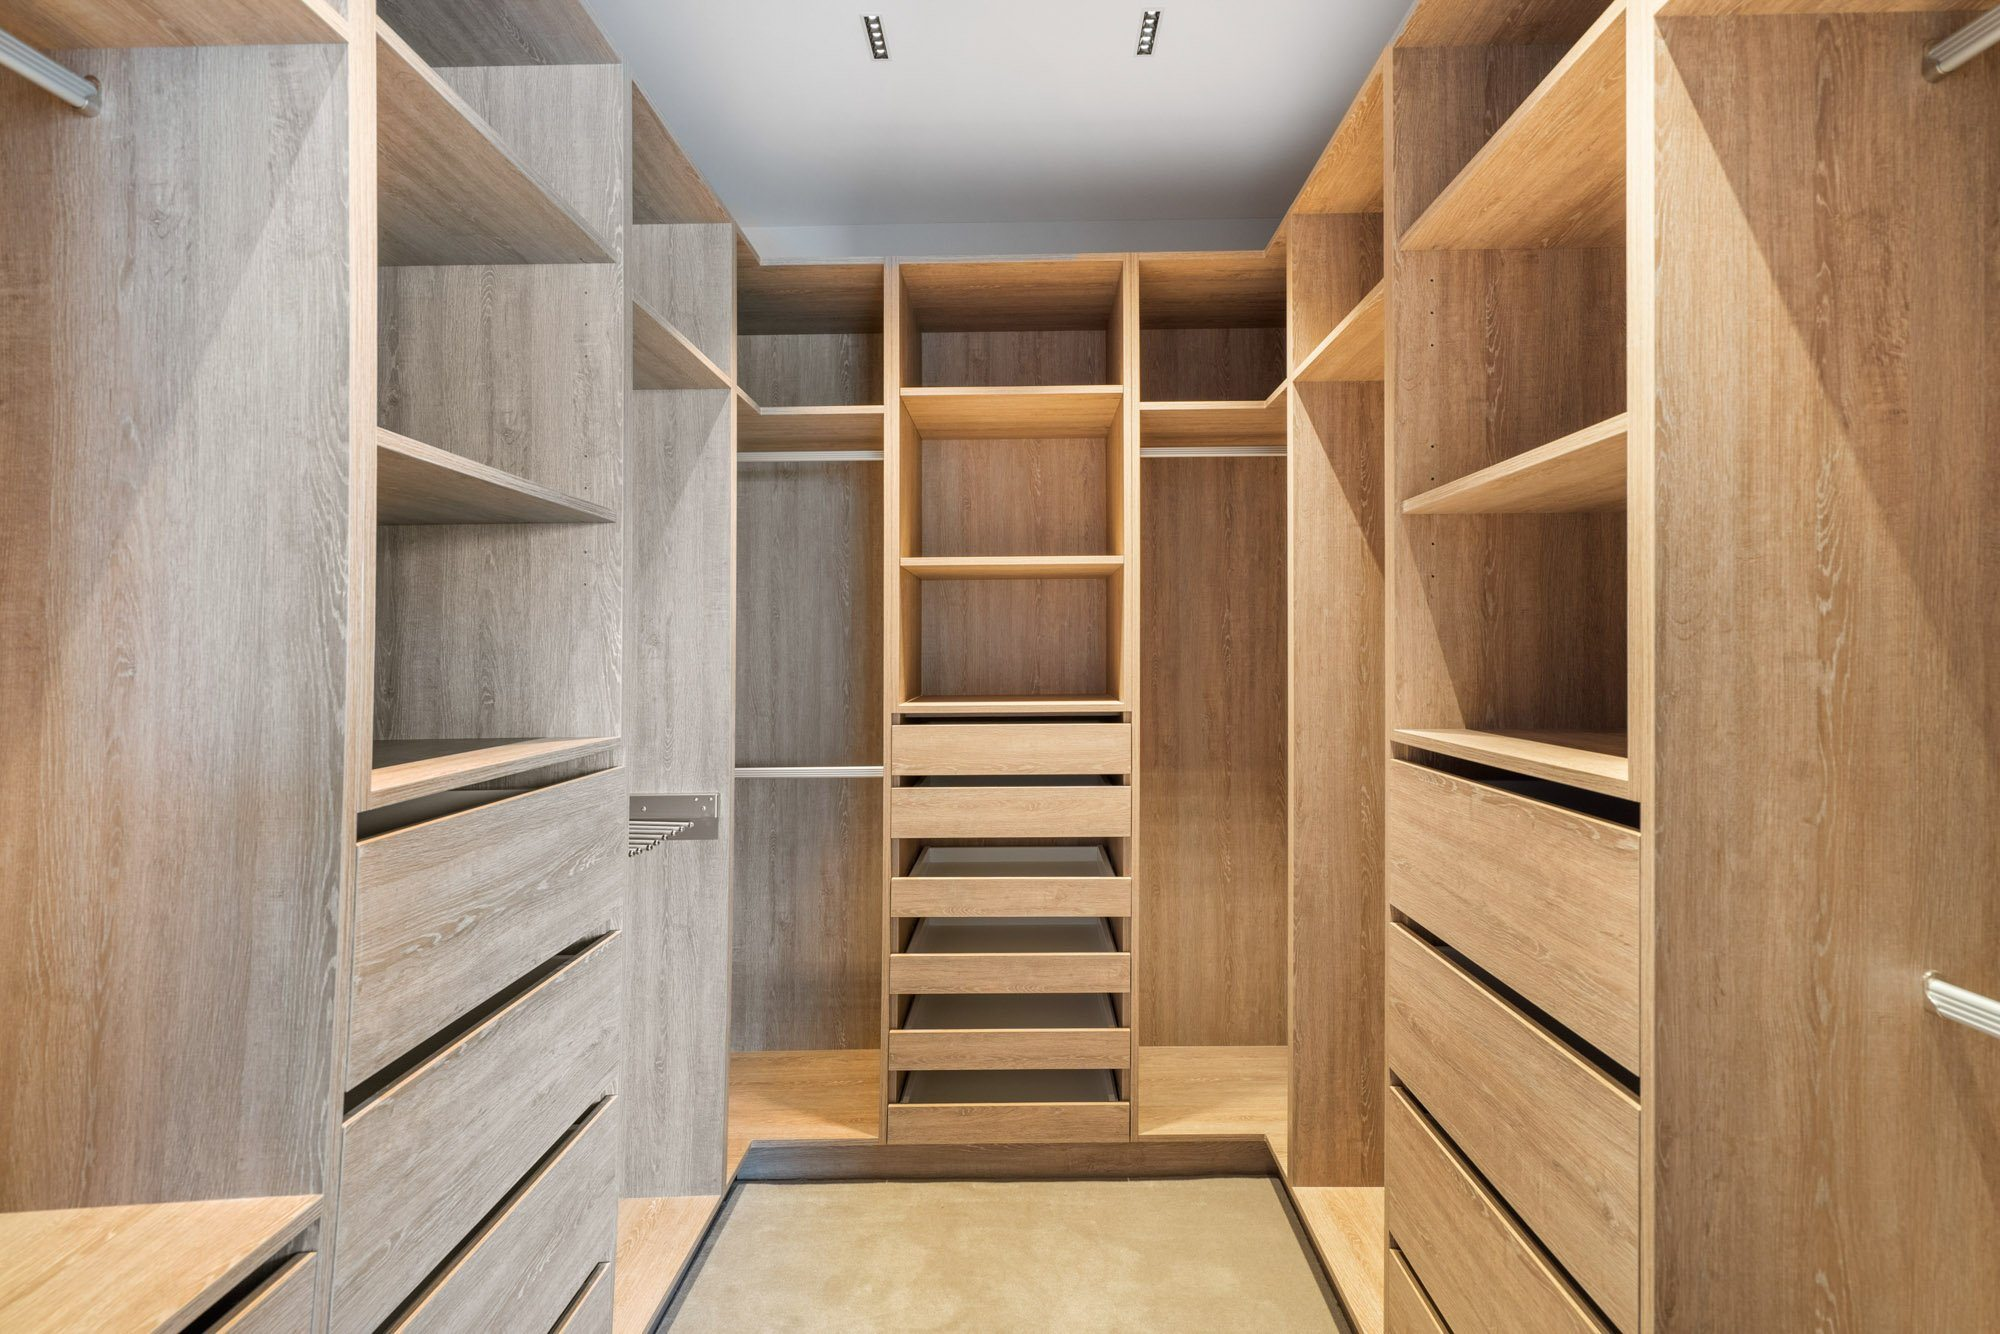 Walk in wardrobe made from pine